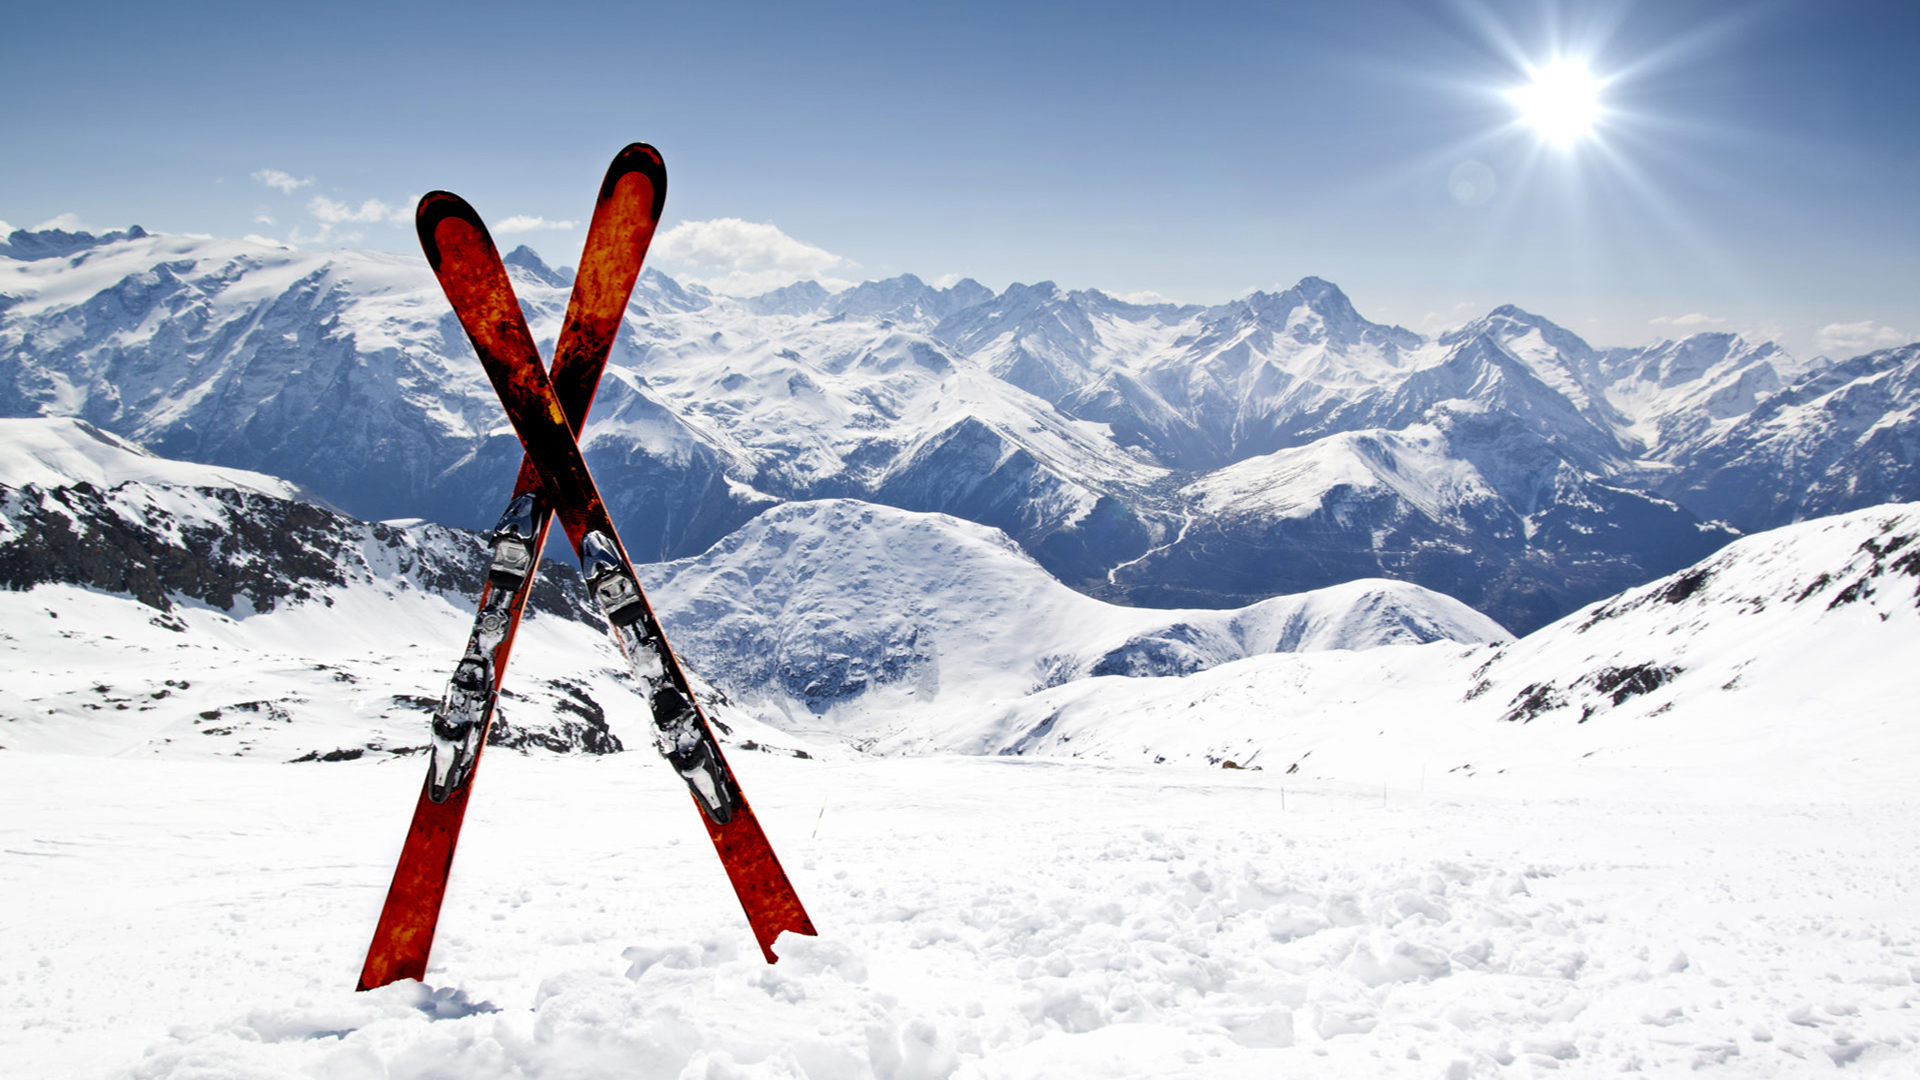 Skiing with a view over the mountains. Virtual background to use on Zoom, Microsoft Teams, Skype, Google Meet, WebEx or any other compatible app.